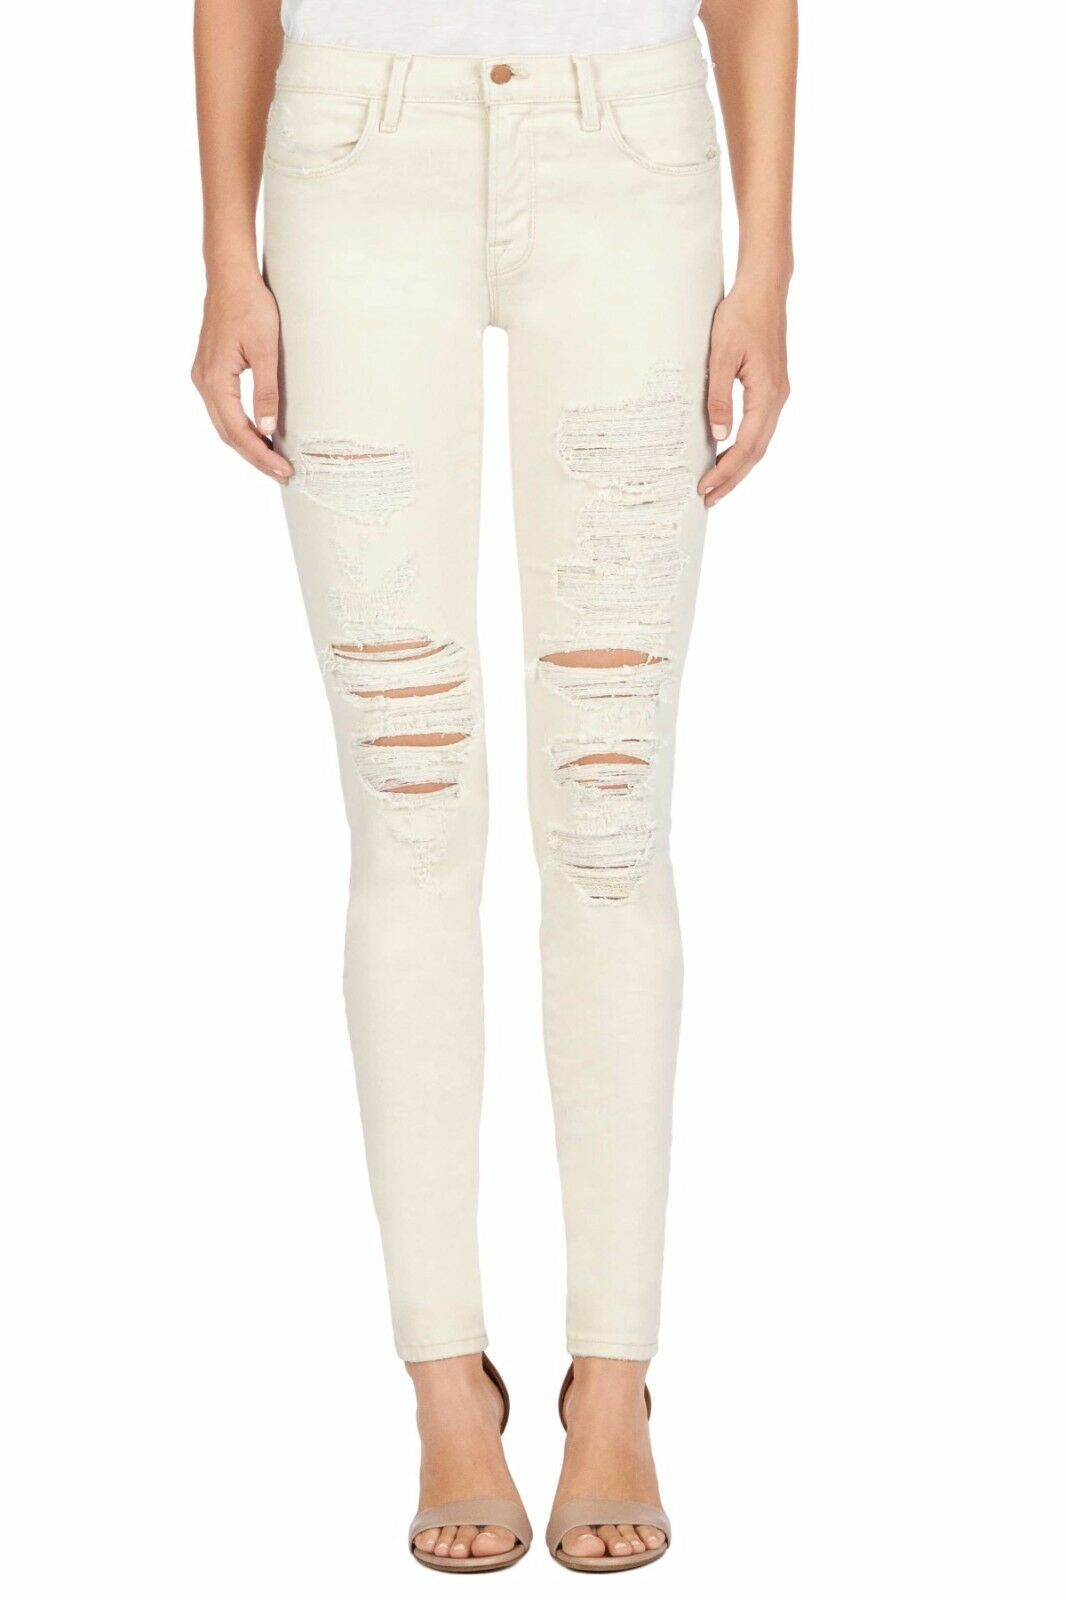 J BRAND 620 Mid Rise Super Skinny Jean, Divo Destroyed Off White Cream - Size 29